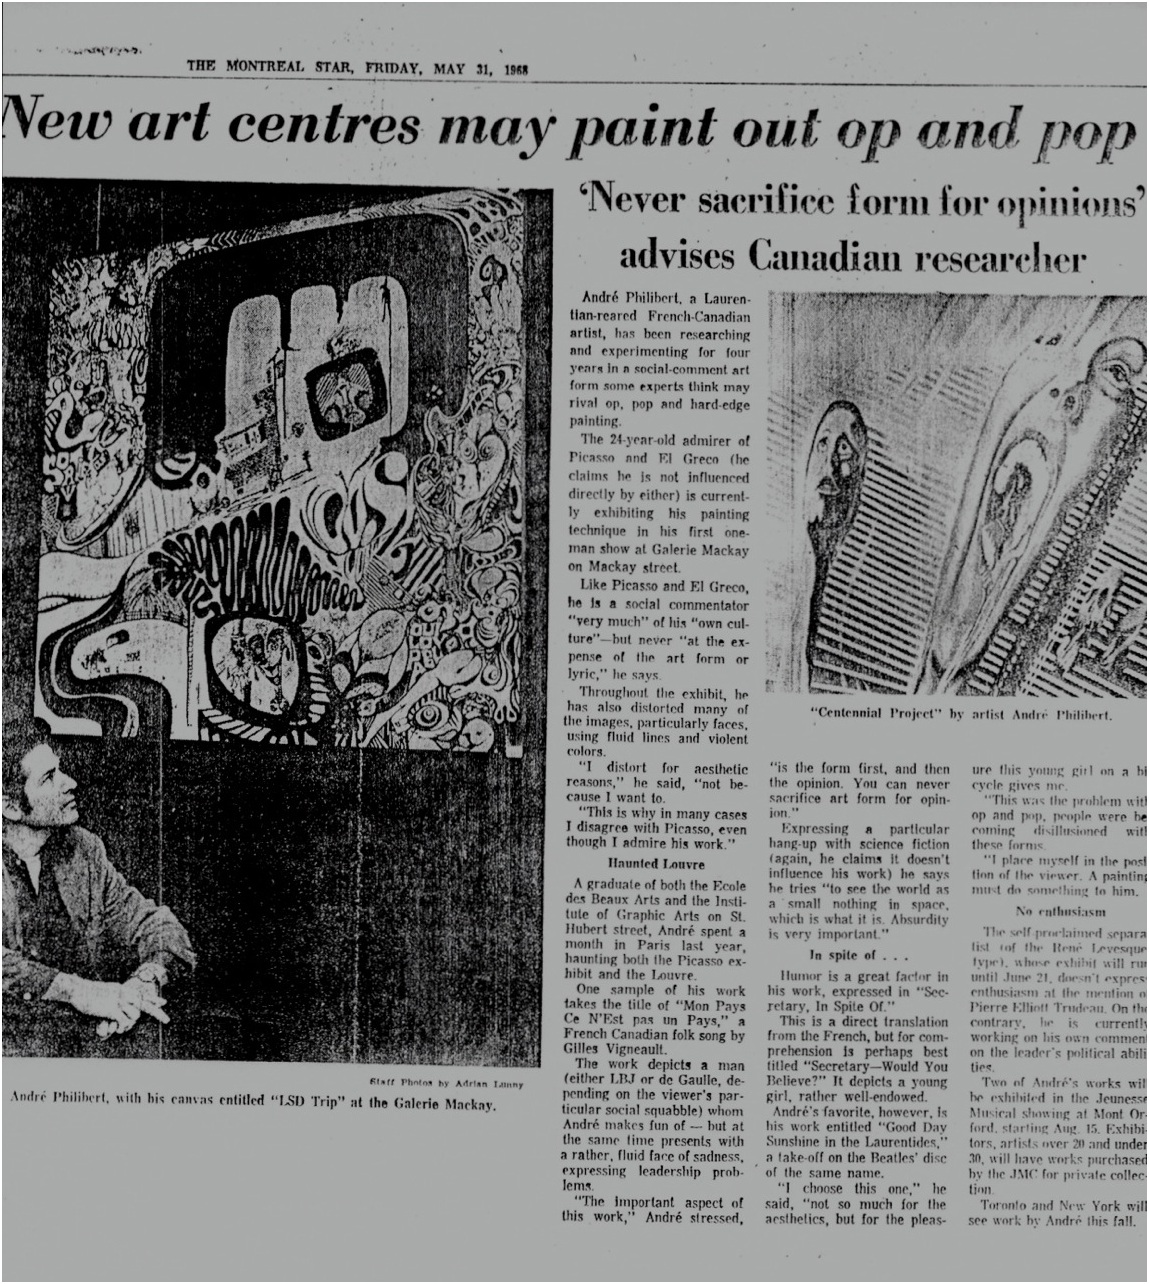 THE MONTREAL STAR 1968